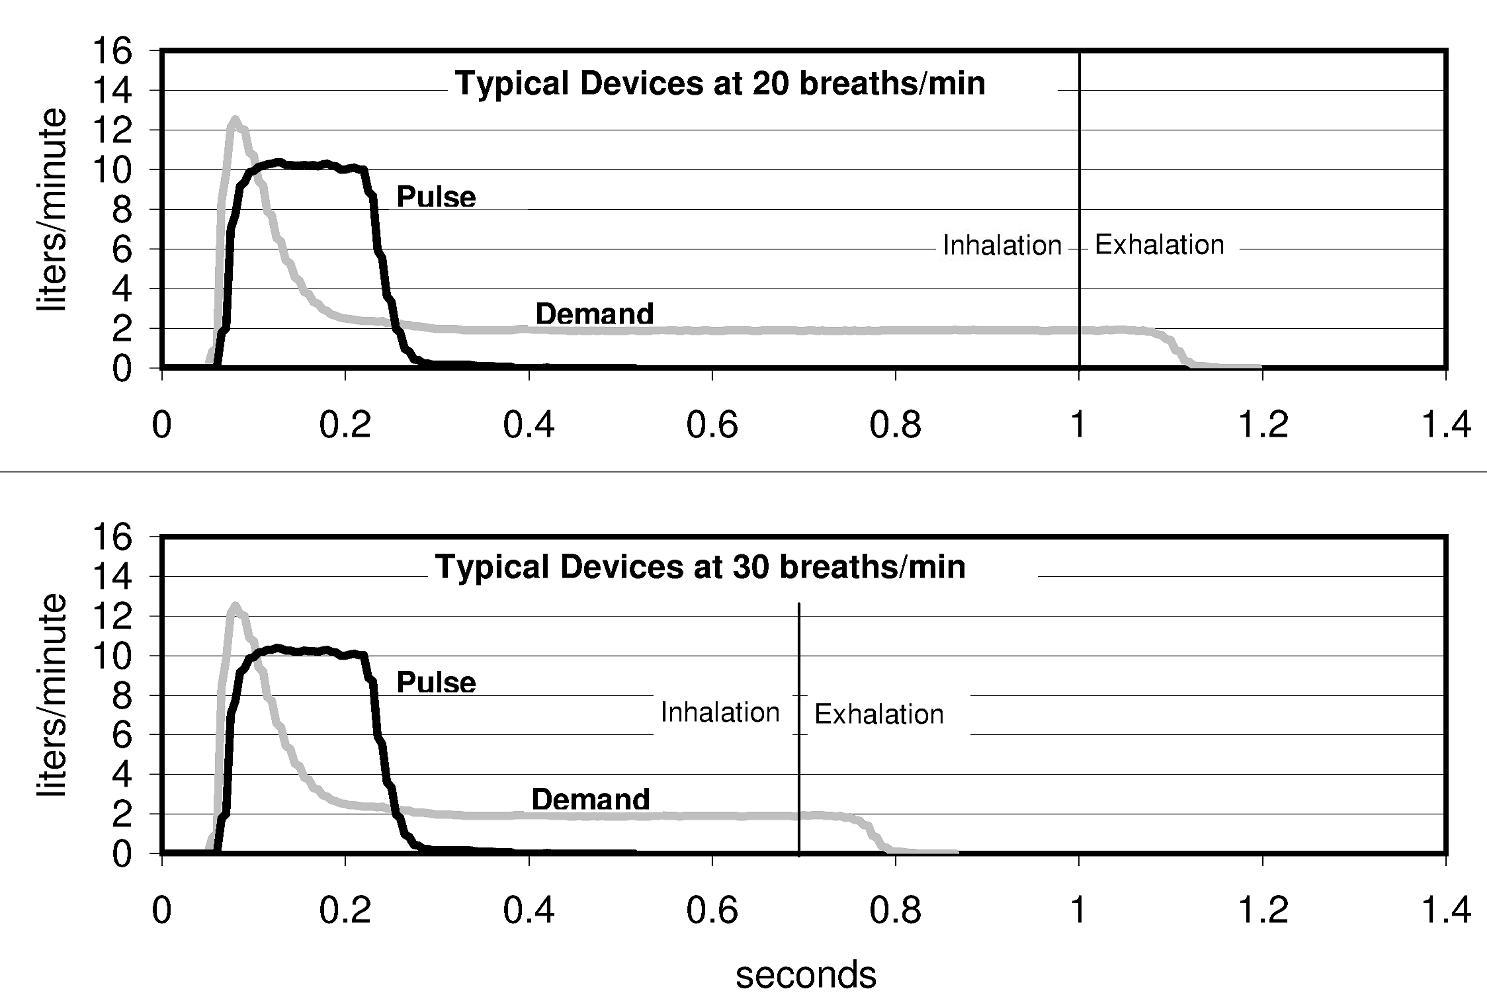 Pulse vs. Demand/Hybrid devices at 20 and 30 bpm